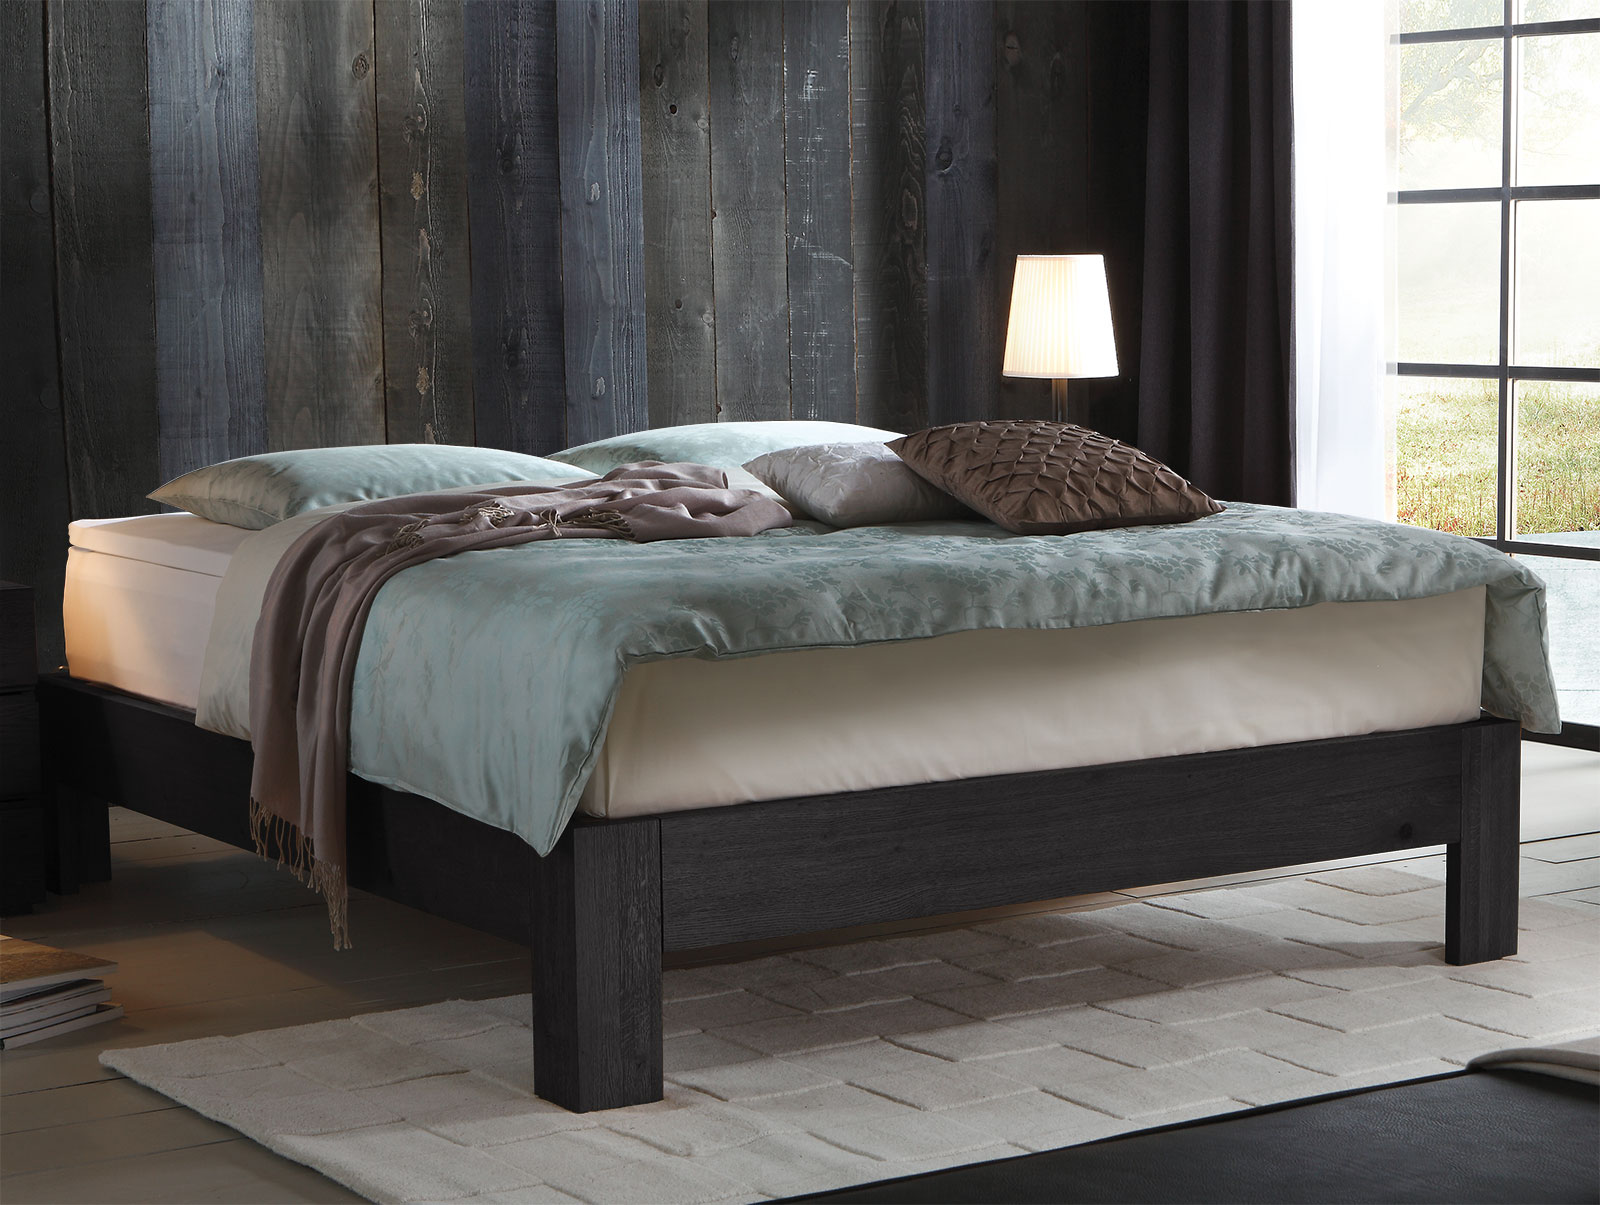 boxspringbett ohne kopfteil in eiche massiv kingston. Black Bedroom Furniture Sets. Home Design Ideas